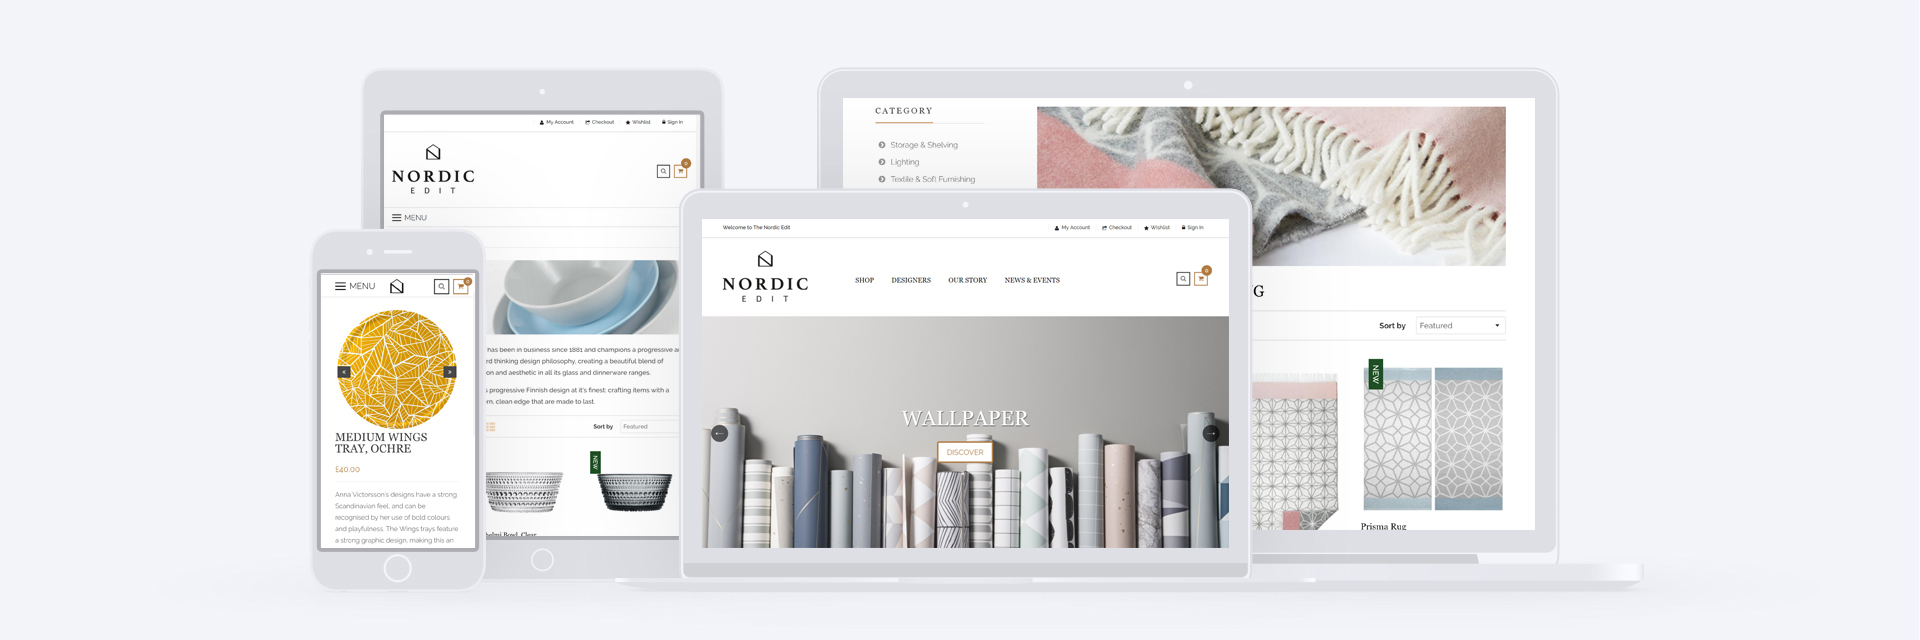 Nordic Edit Shopify site